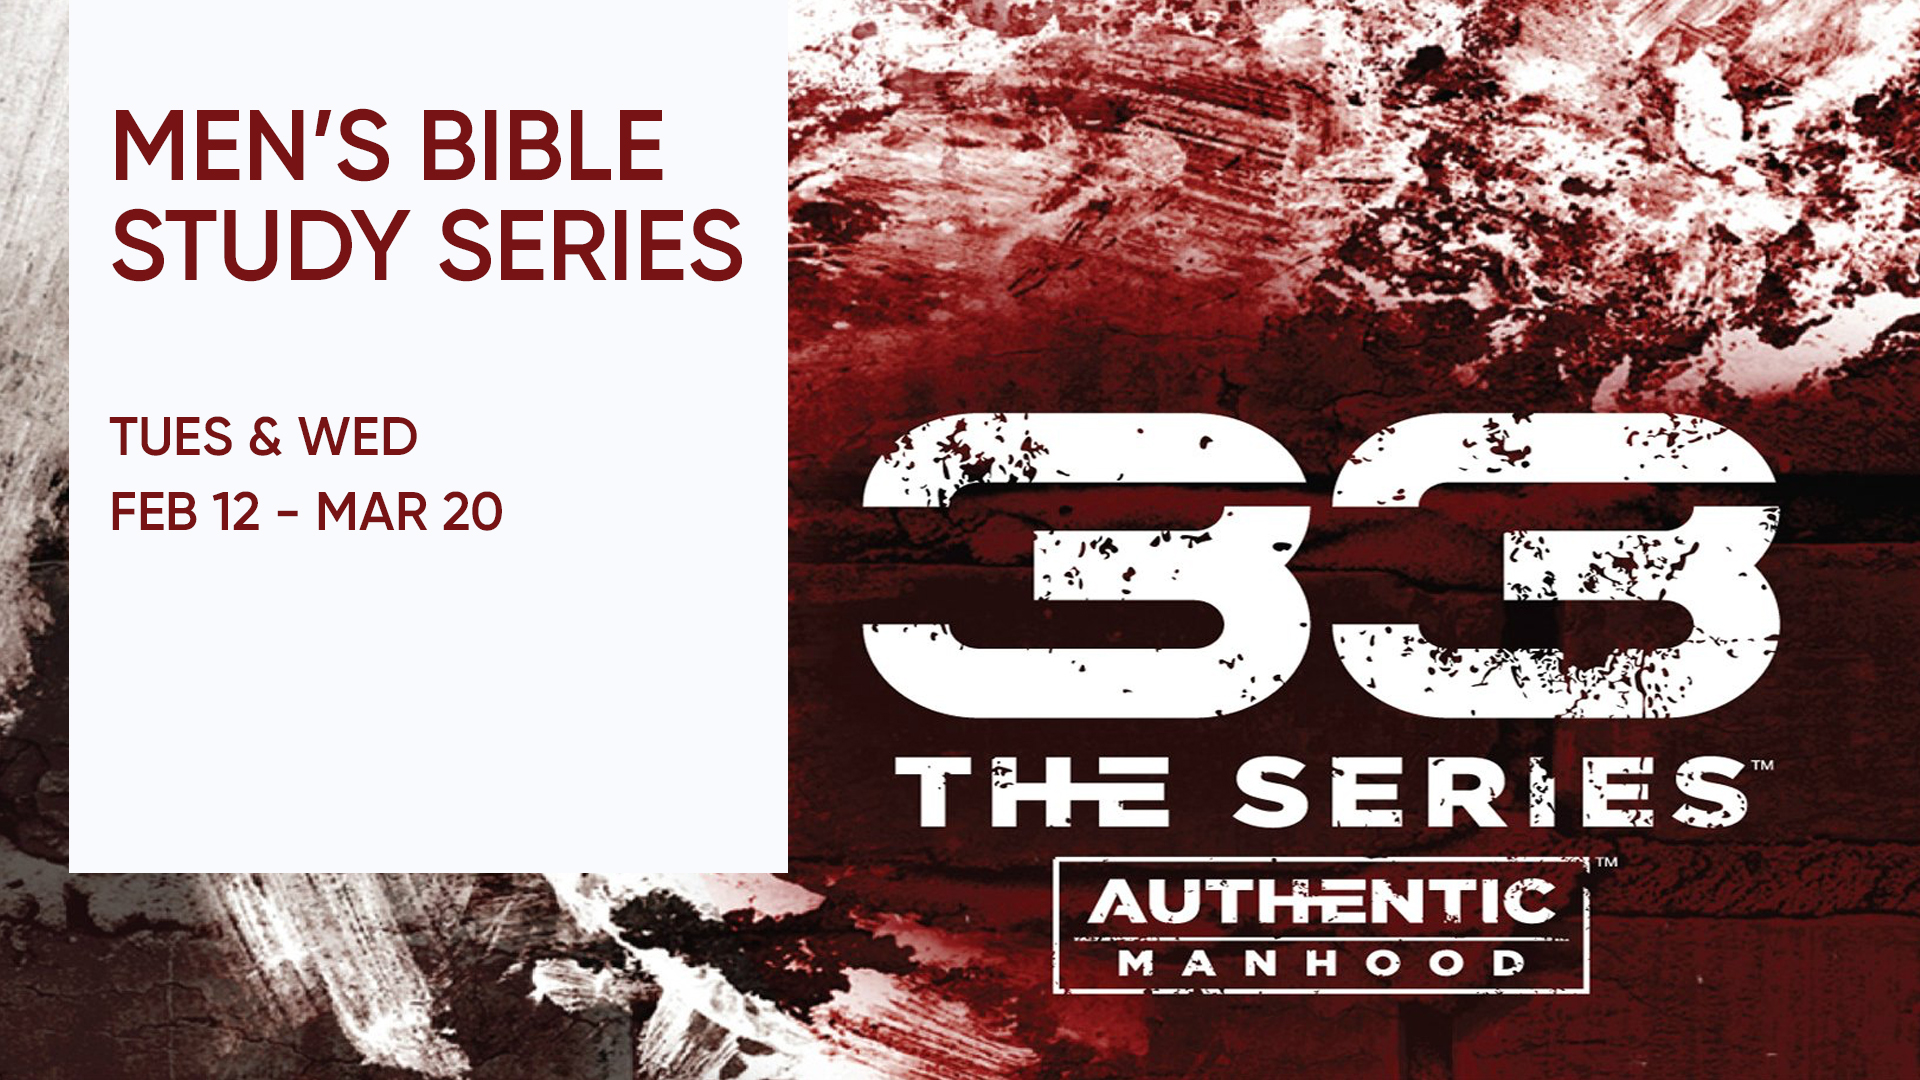 Series 33: Authentic Manhood - Spring 2019